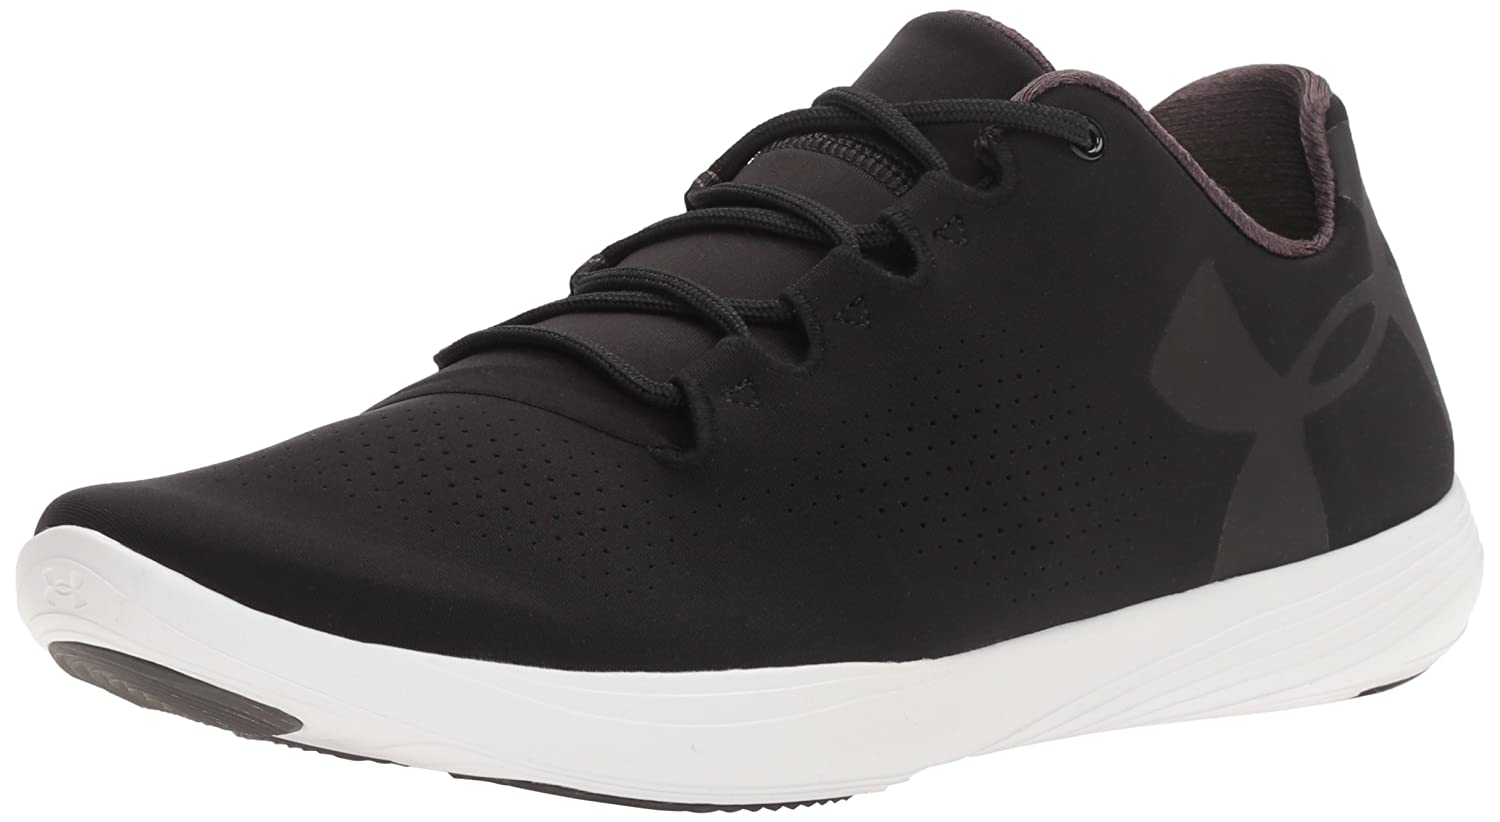 Under Armour Women's Street Precision Low Sneaker B0182YJL1Y 11 M US|Black (001)/White